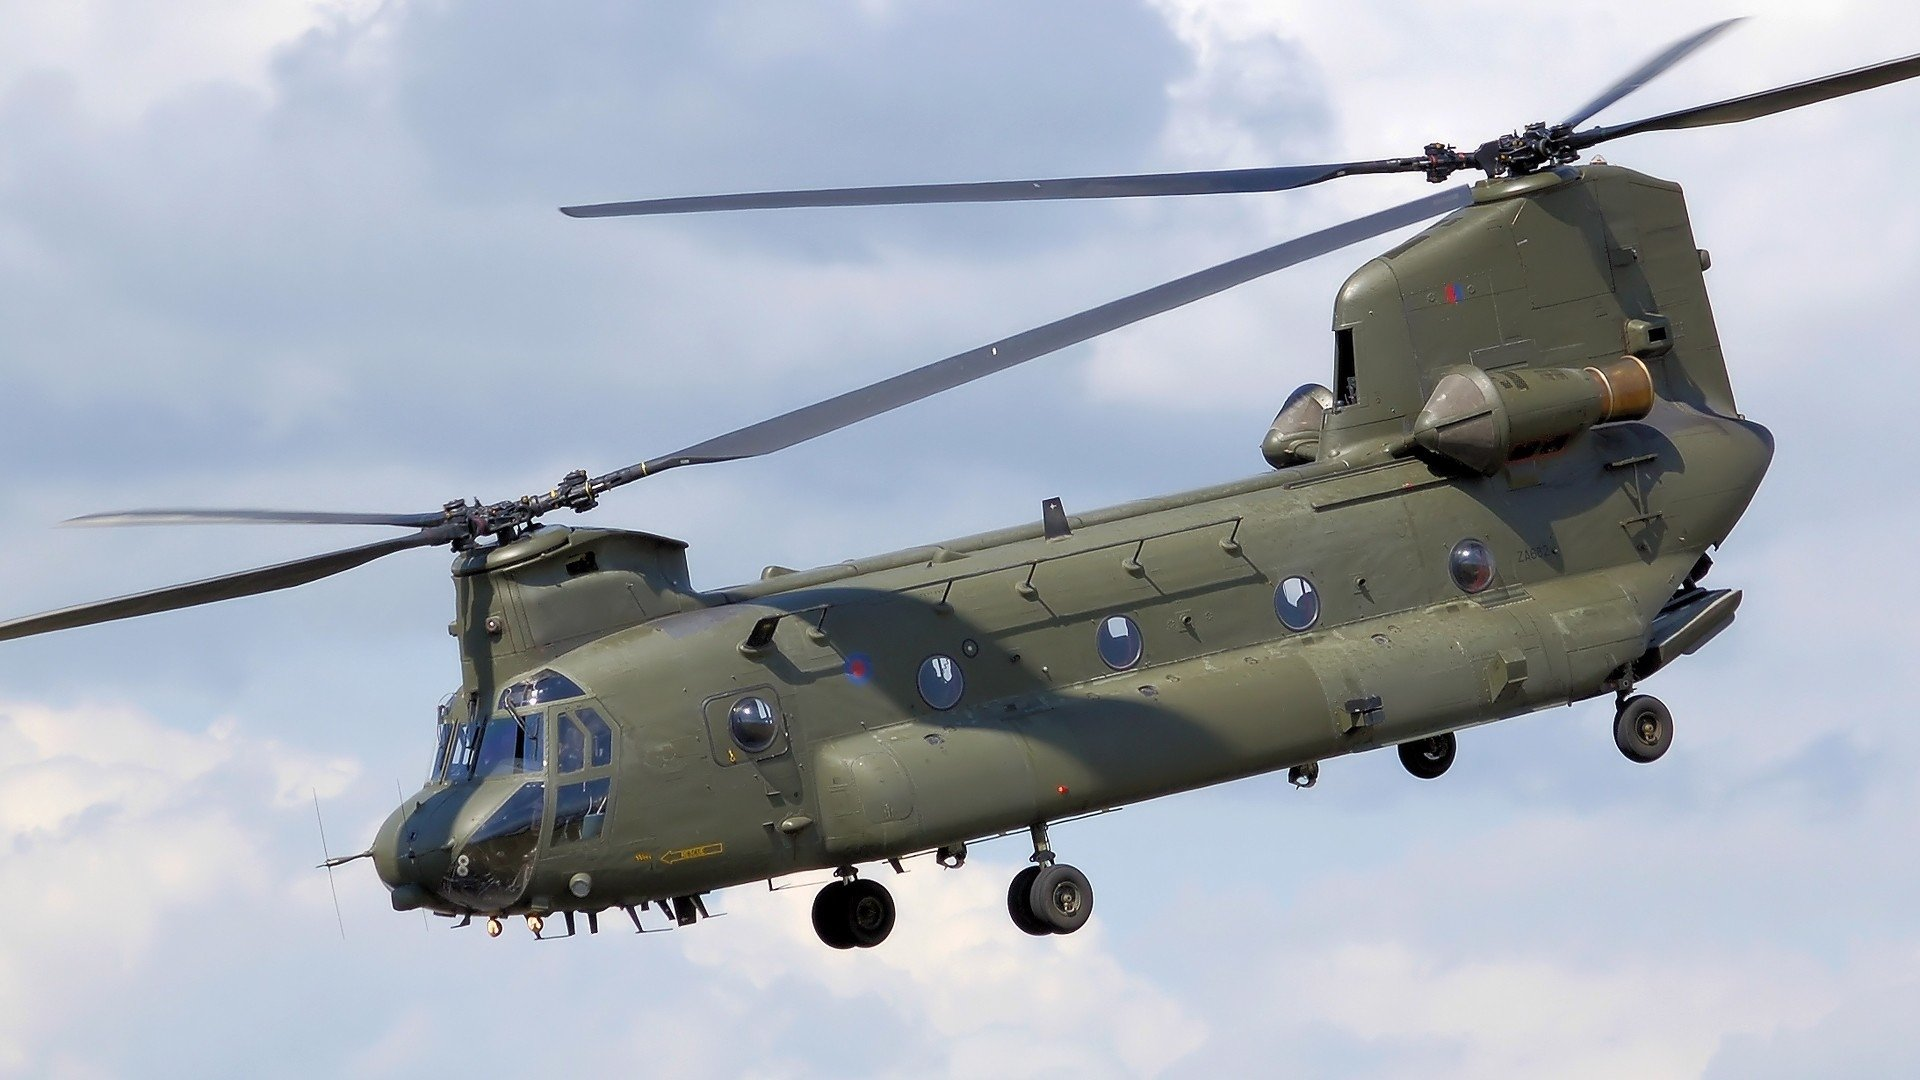 boeing ch-47 chinook full hd wallpaper and background | 1920x1080